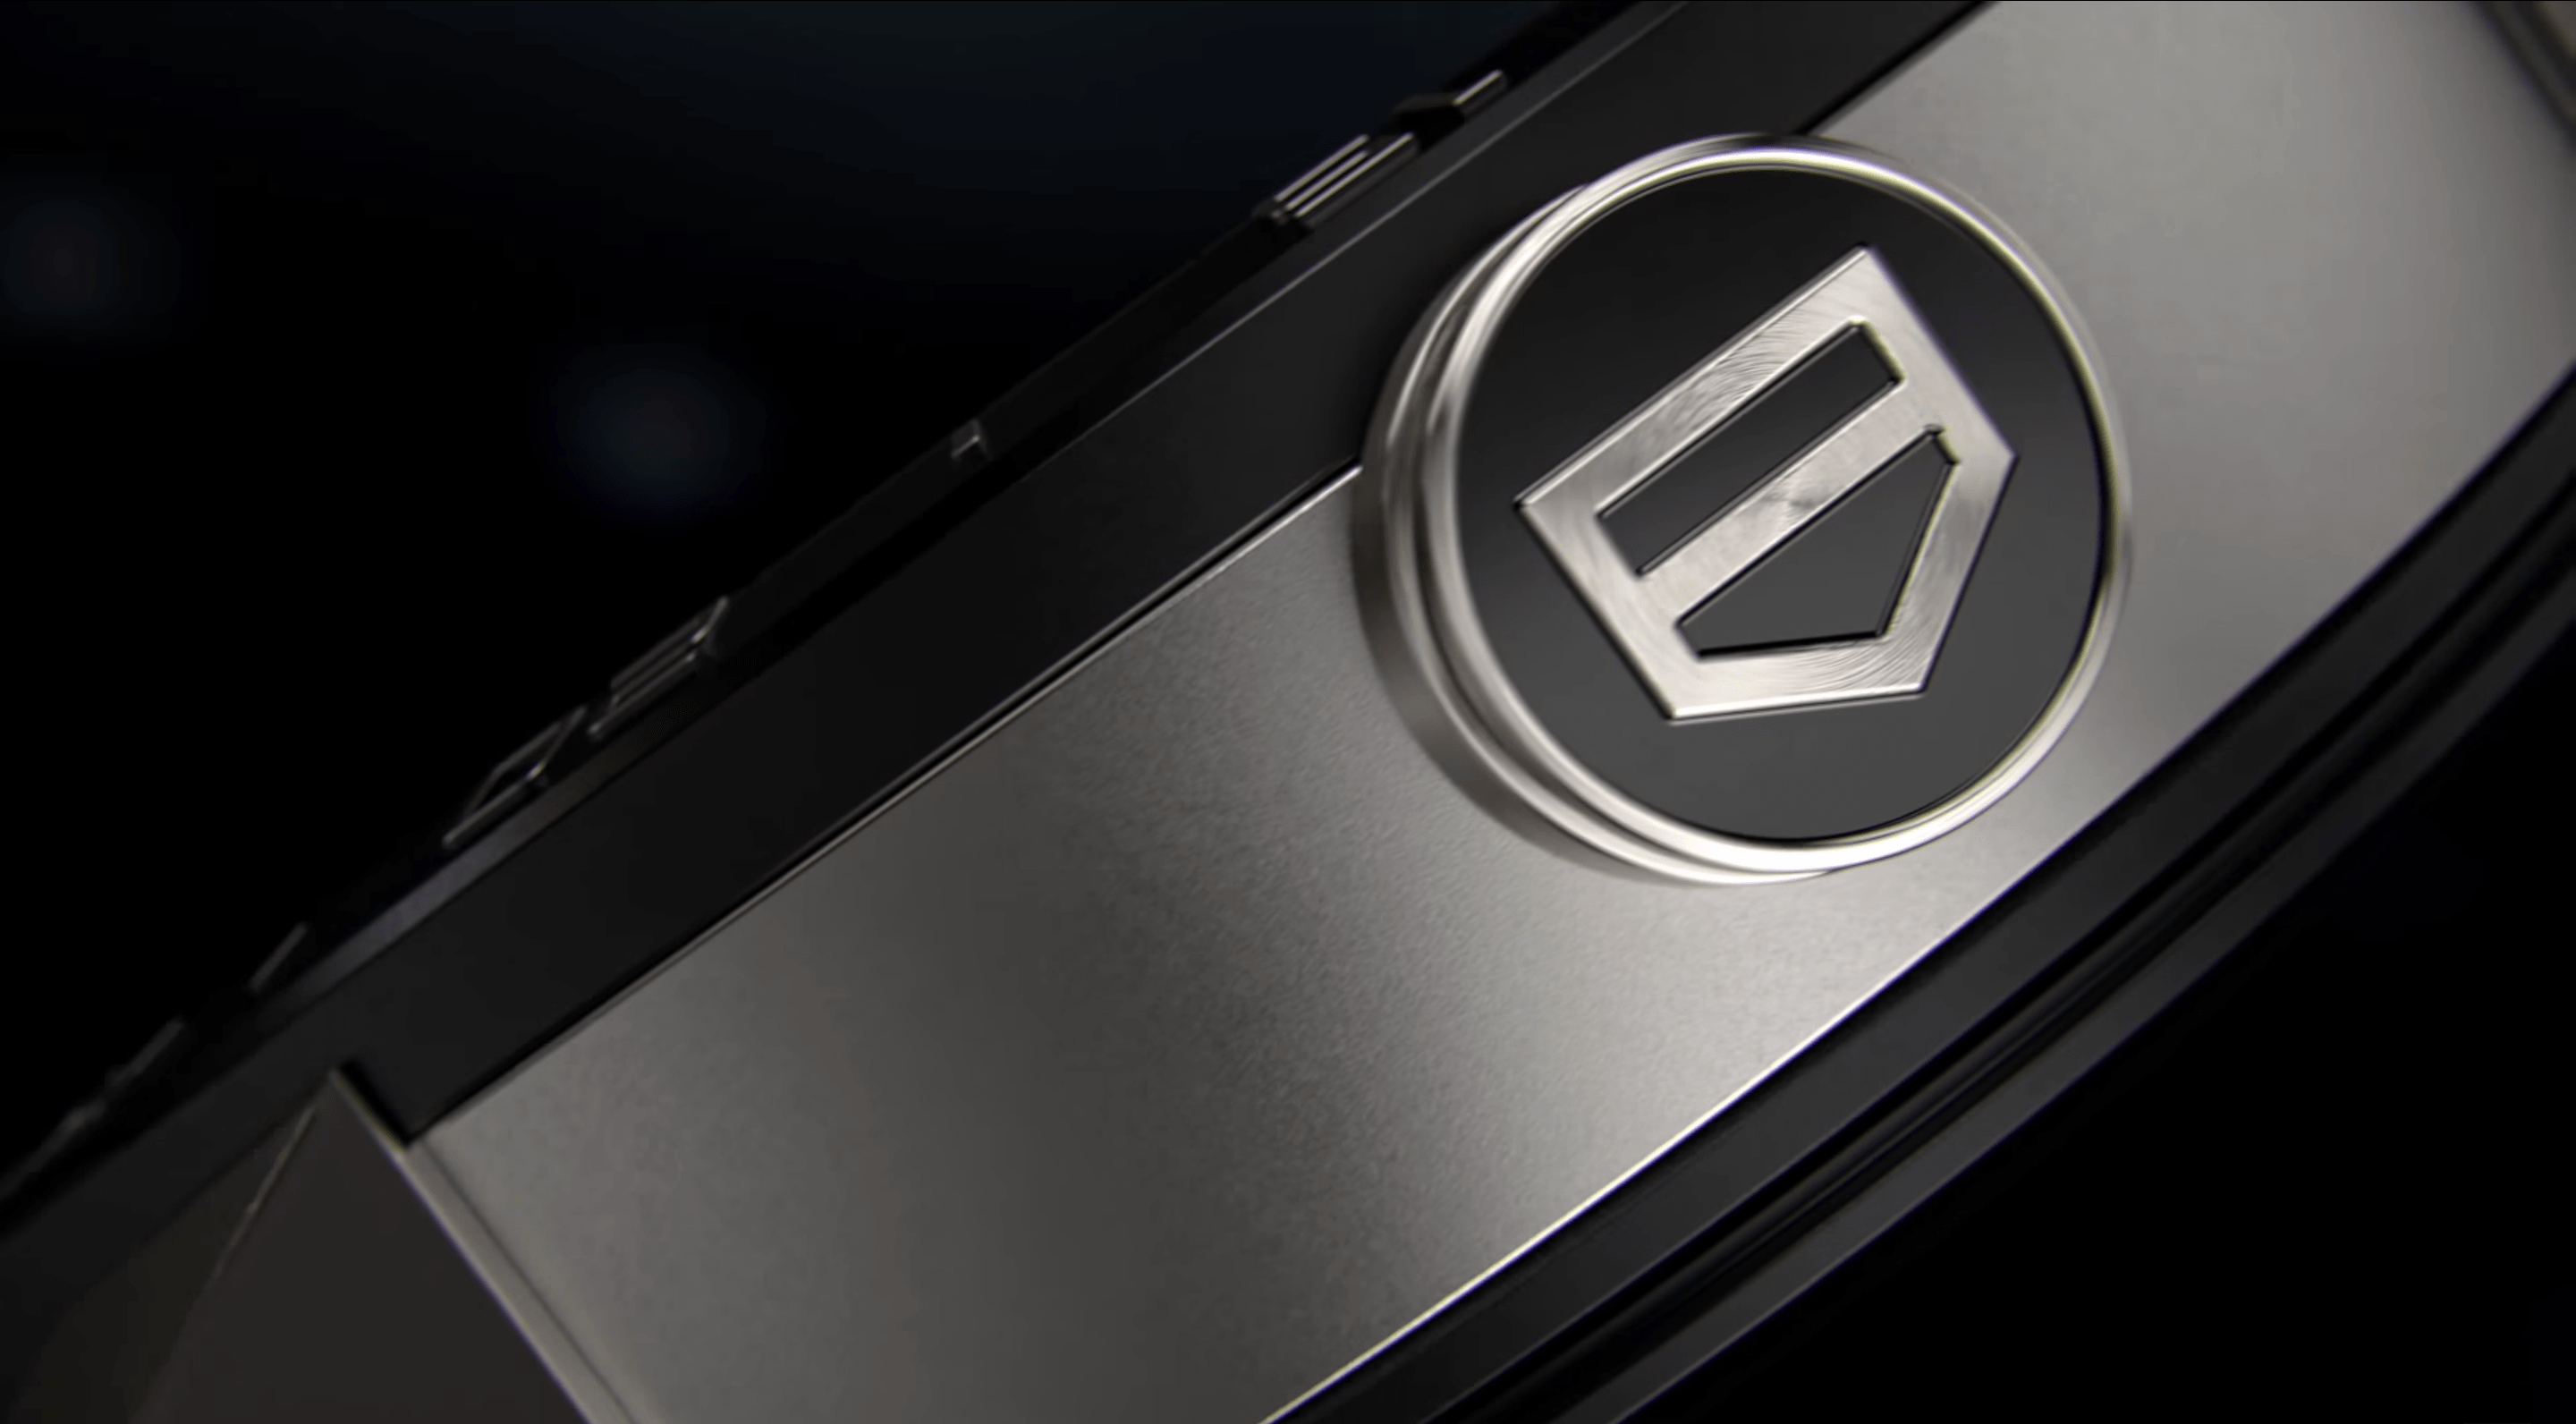 The button on the side showcases modern Tag Heuer iconography.